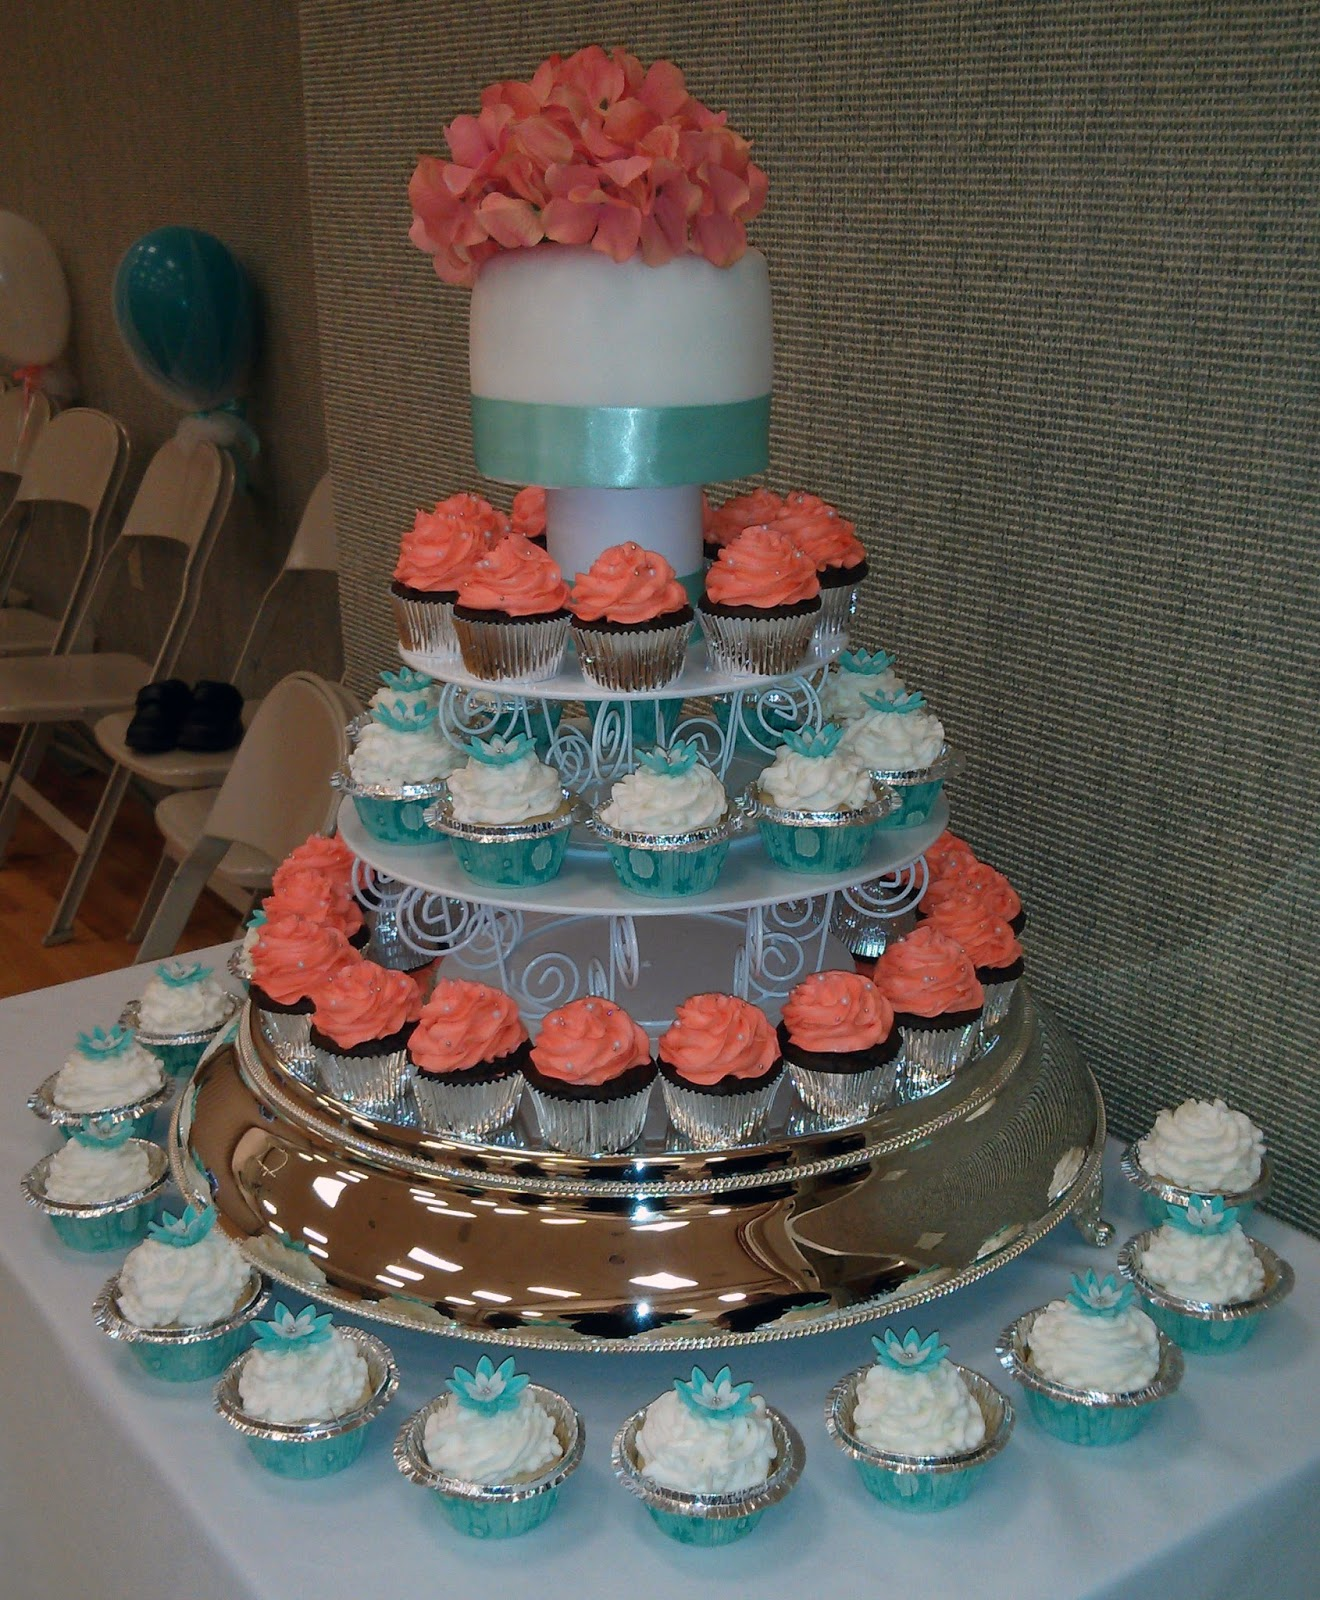 Crazy About Cakes  Jodi s Cupcake Wedding Cake But      I had a friend get married yesterday  When I heard that she wanted  a  cupcake  cake  I was totally on board  I REALLY LIKE MAKING CUPCAKES